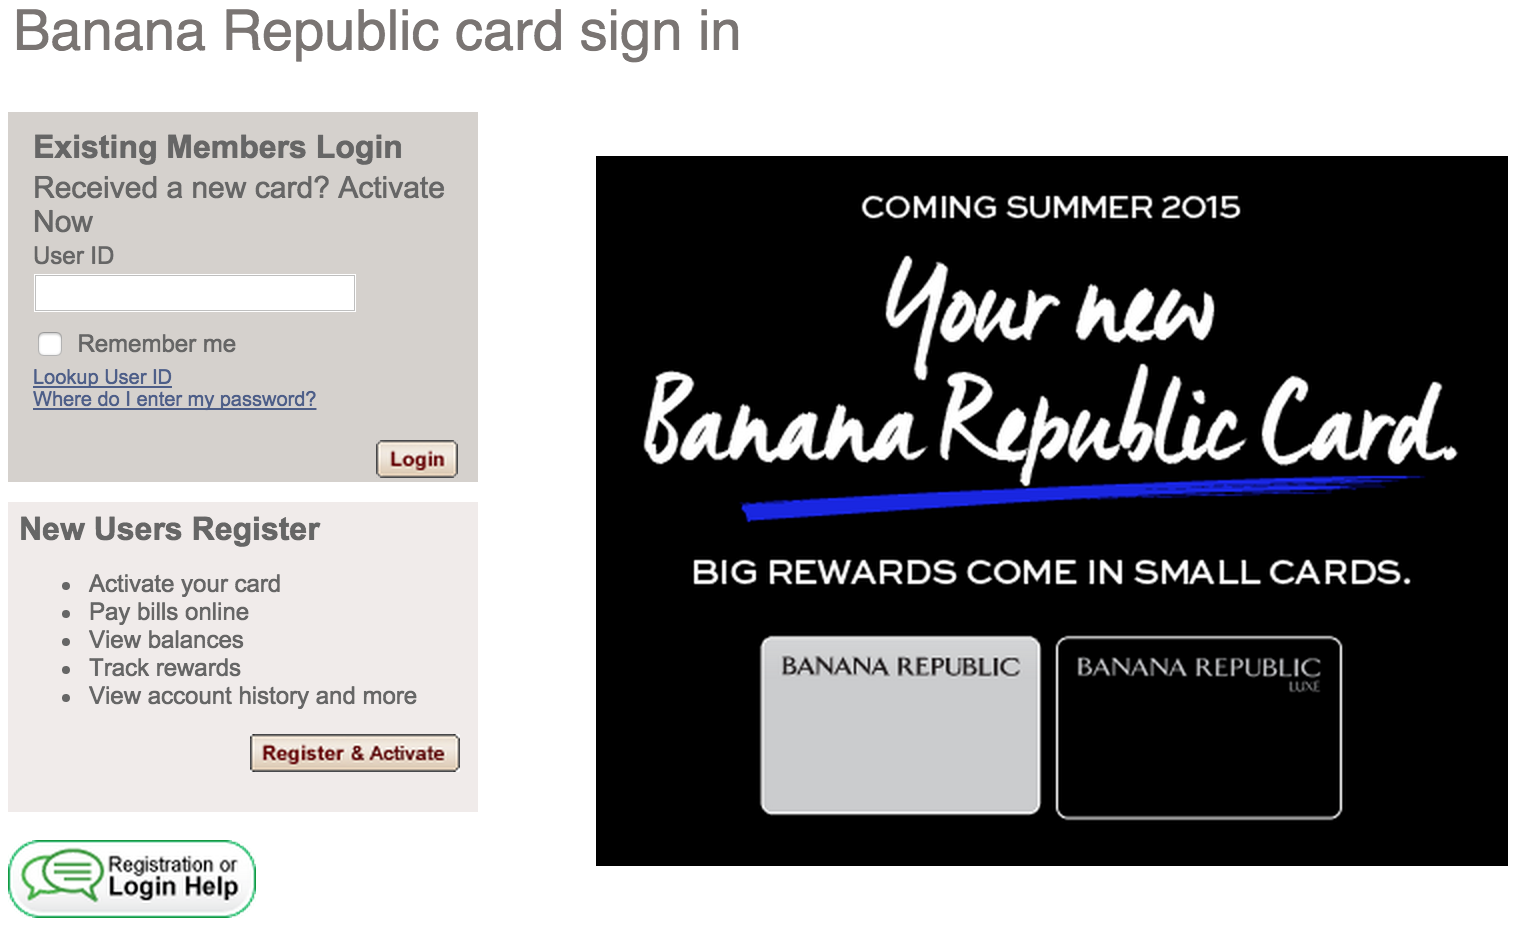 This card application was speculative because I am hoping to get lucrative 5XX promotions in the future like many of their cardholders. The Banana Republic Visa Offer. Other than points (worth $5) for opting out of paper statements and 15% off your first online order, the Banana Republic credit card doesn't have an advertised sign-up bonus.